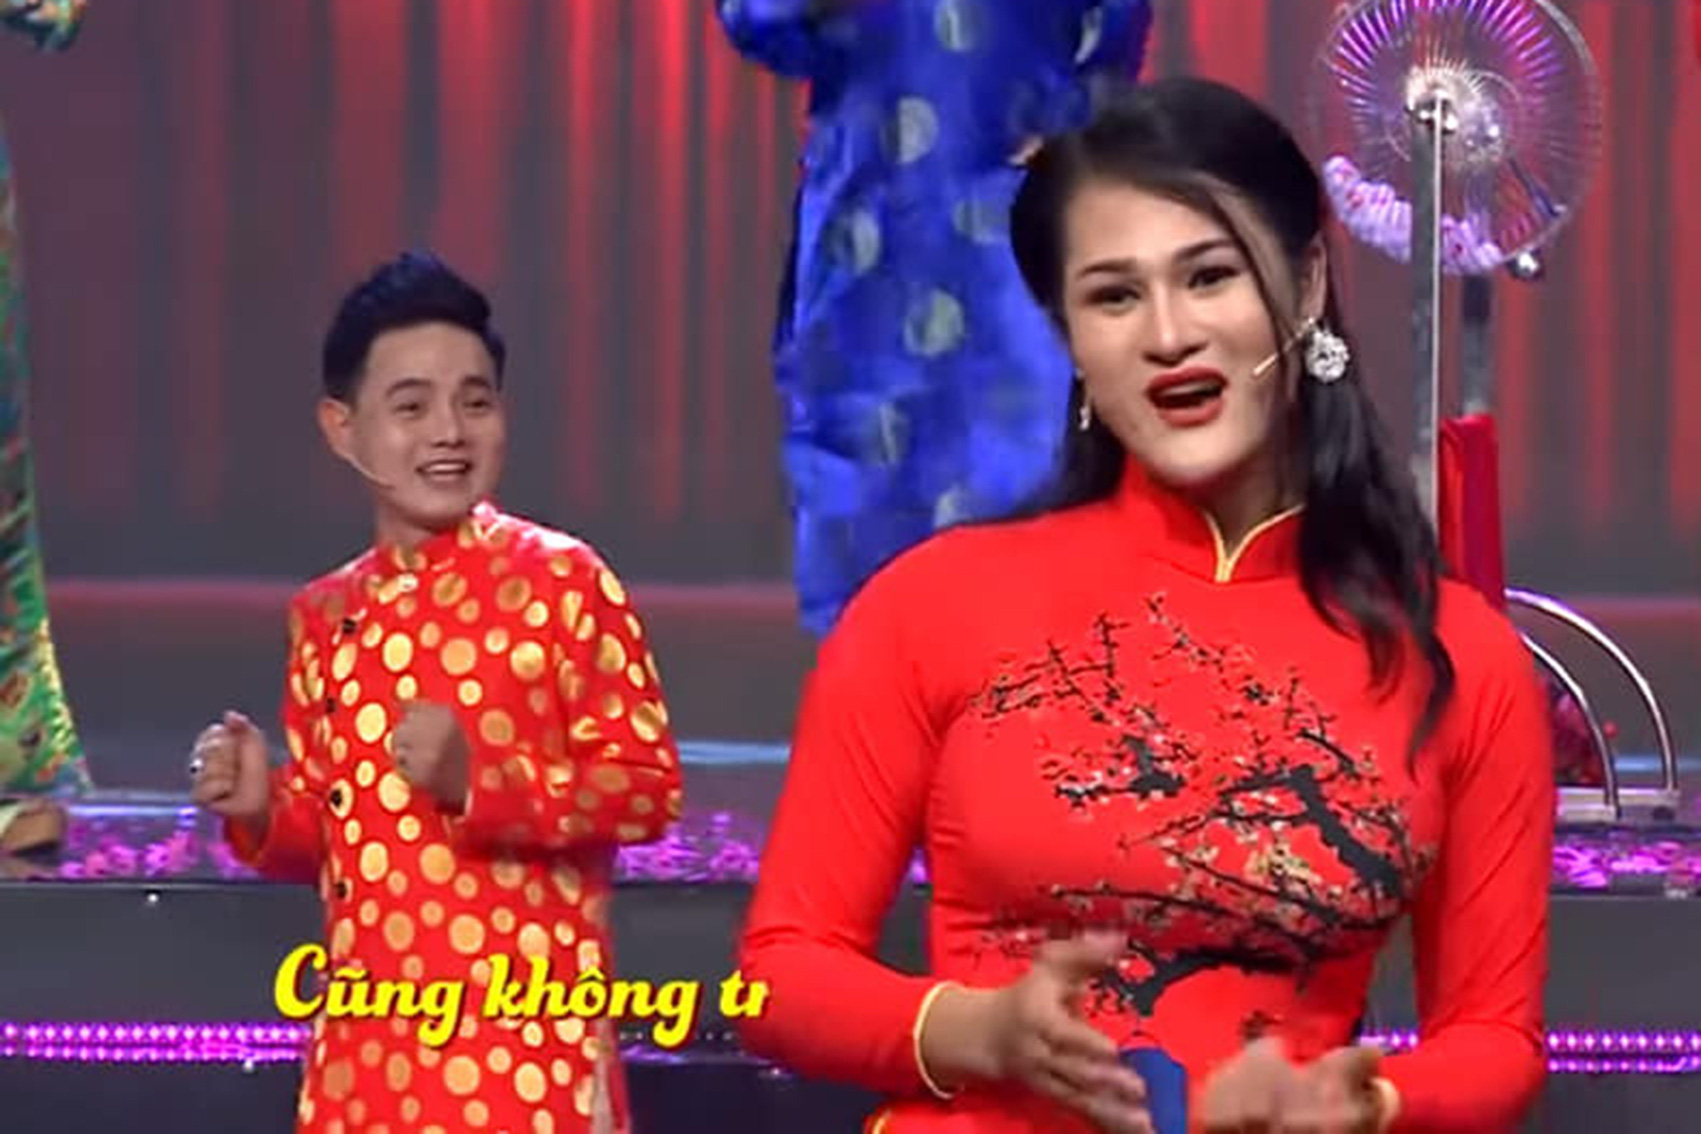 Du Kha Ai (left) is seen attending a singing competition on television in this supplied photo.